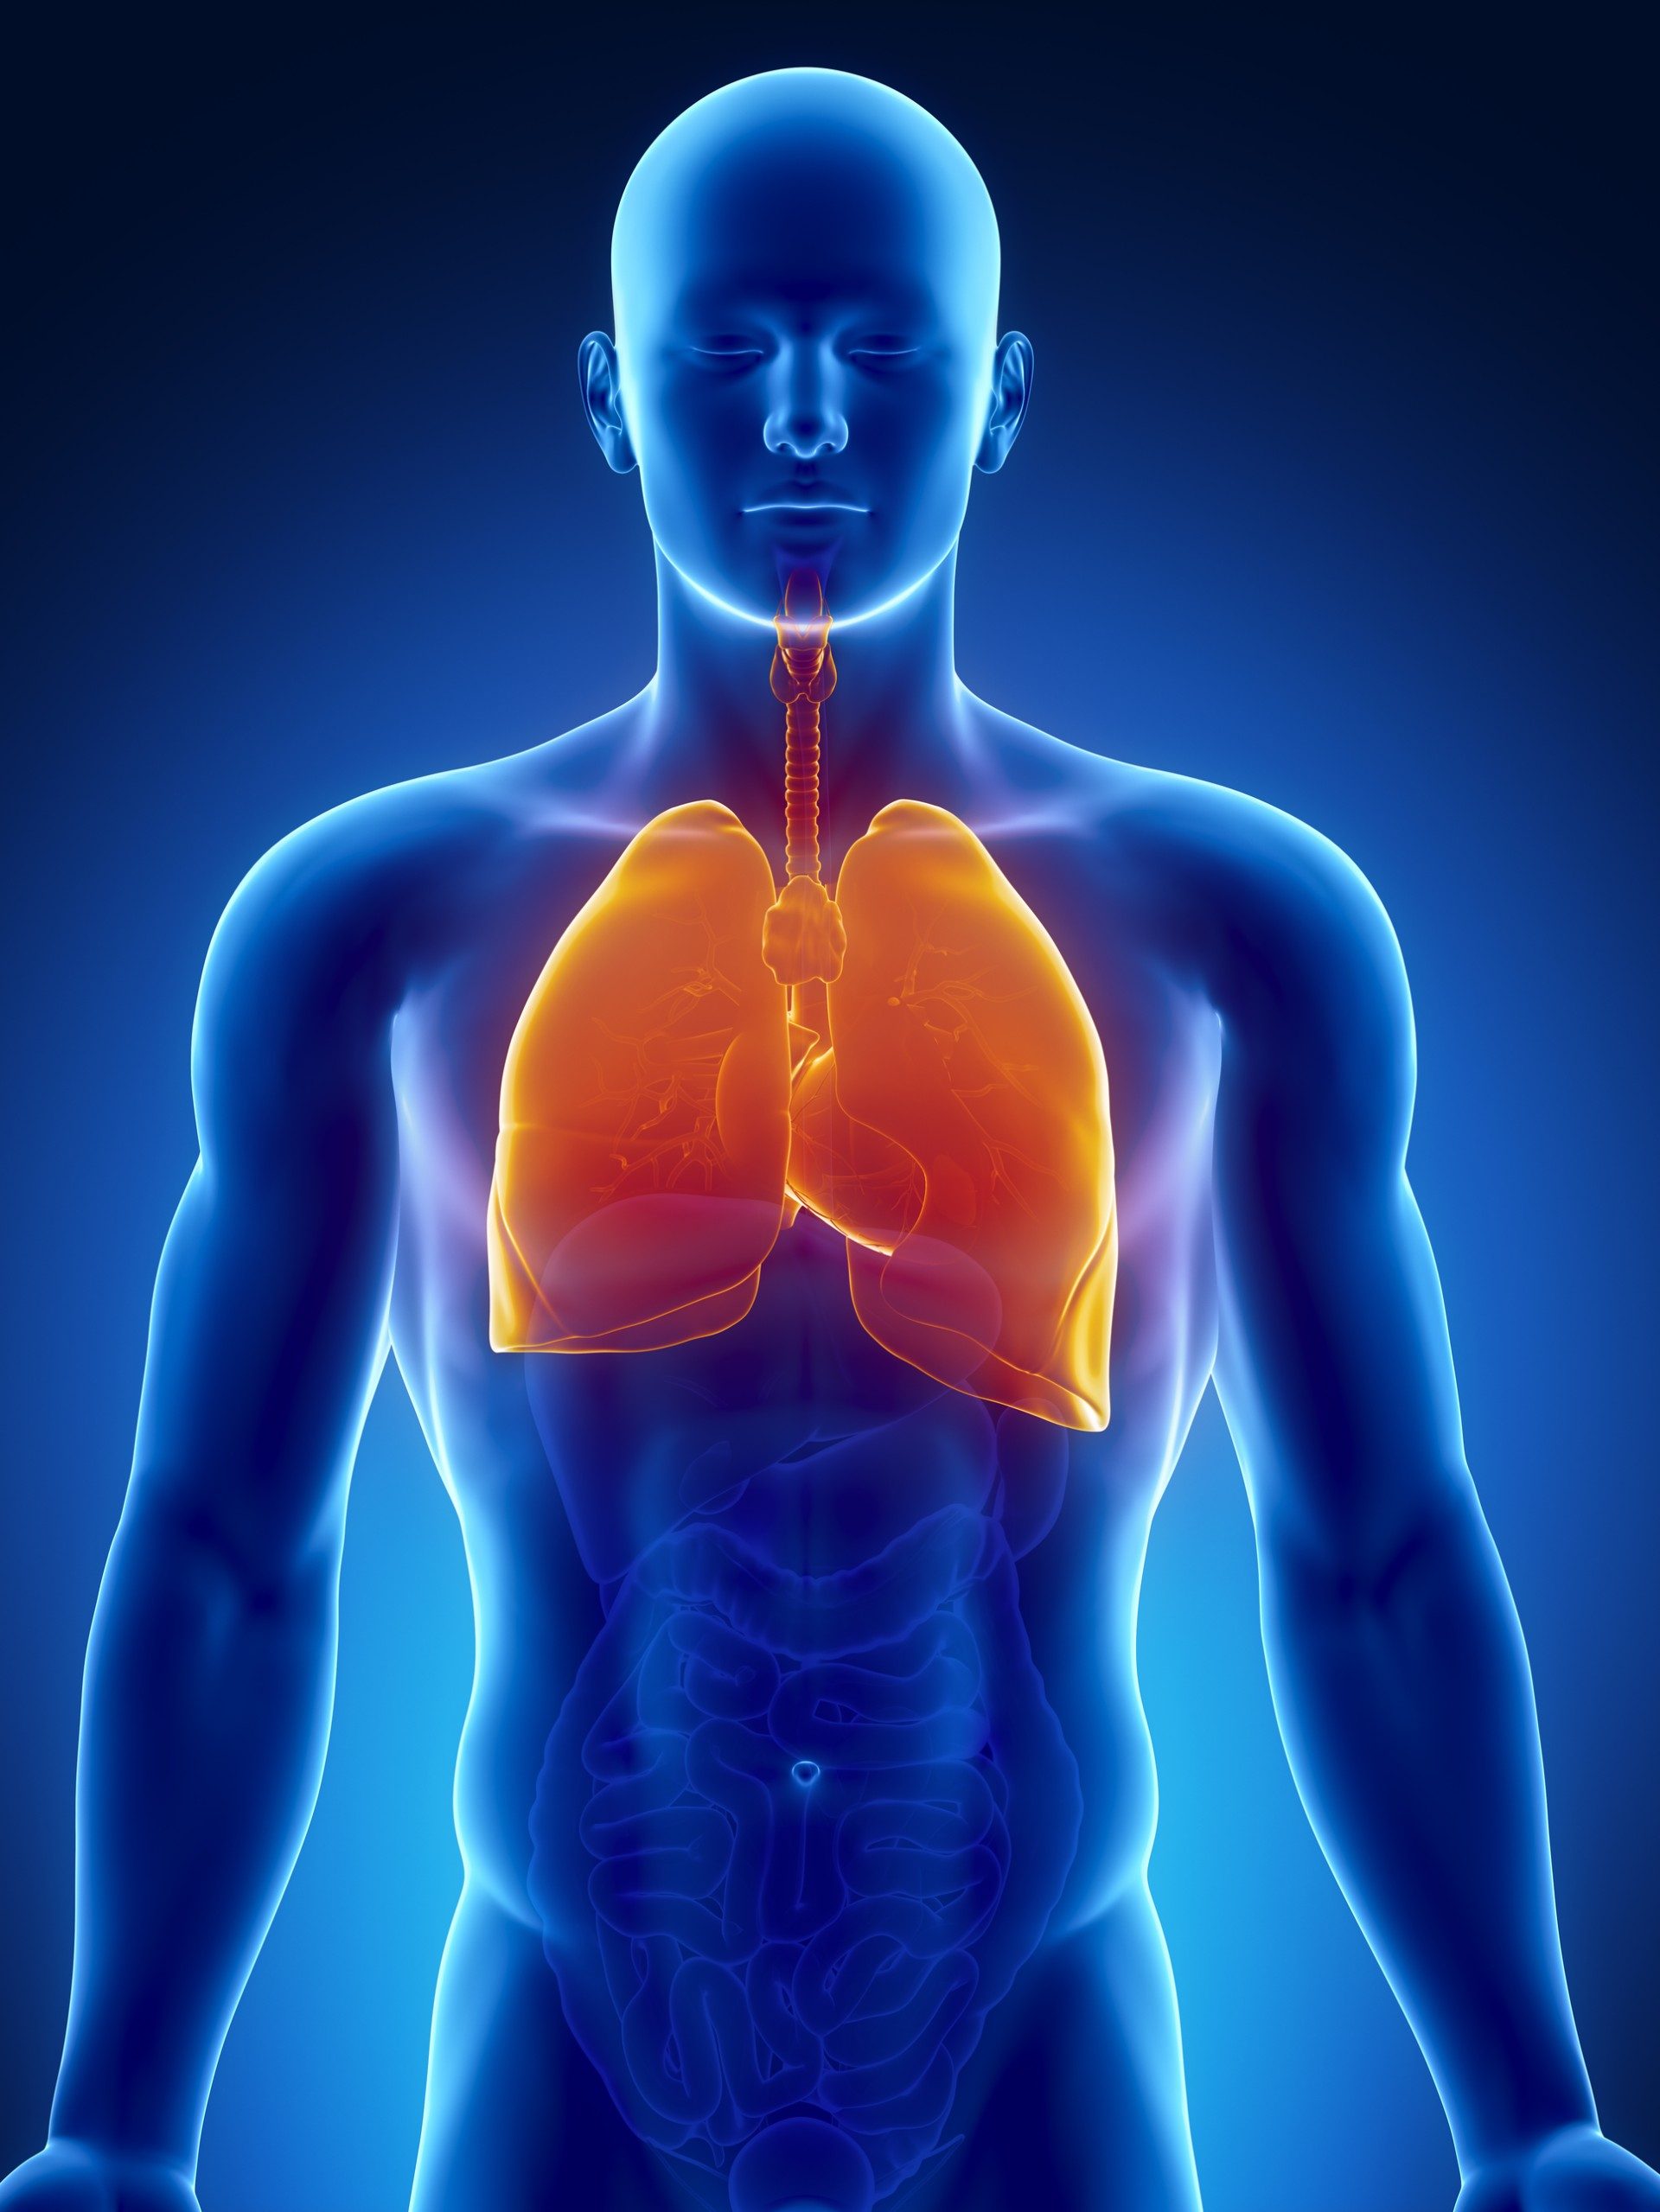 Electronic nose detecting lung cancer